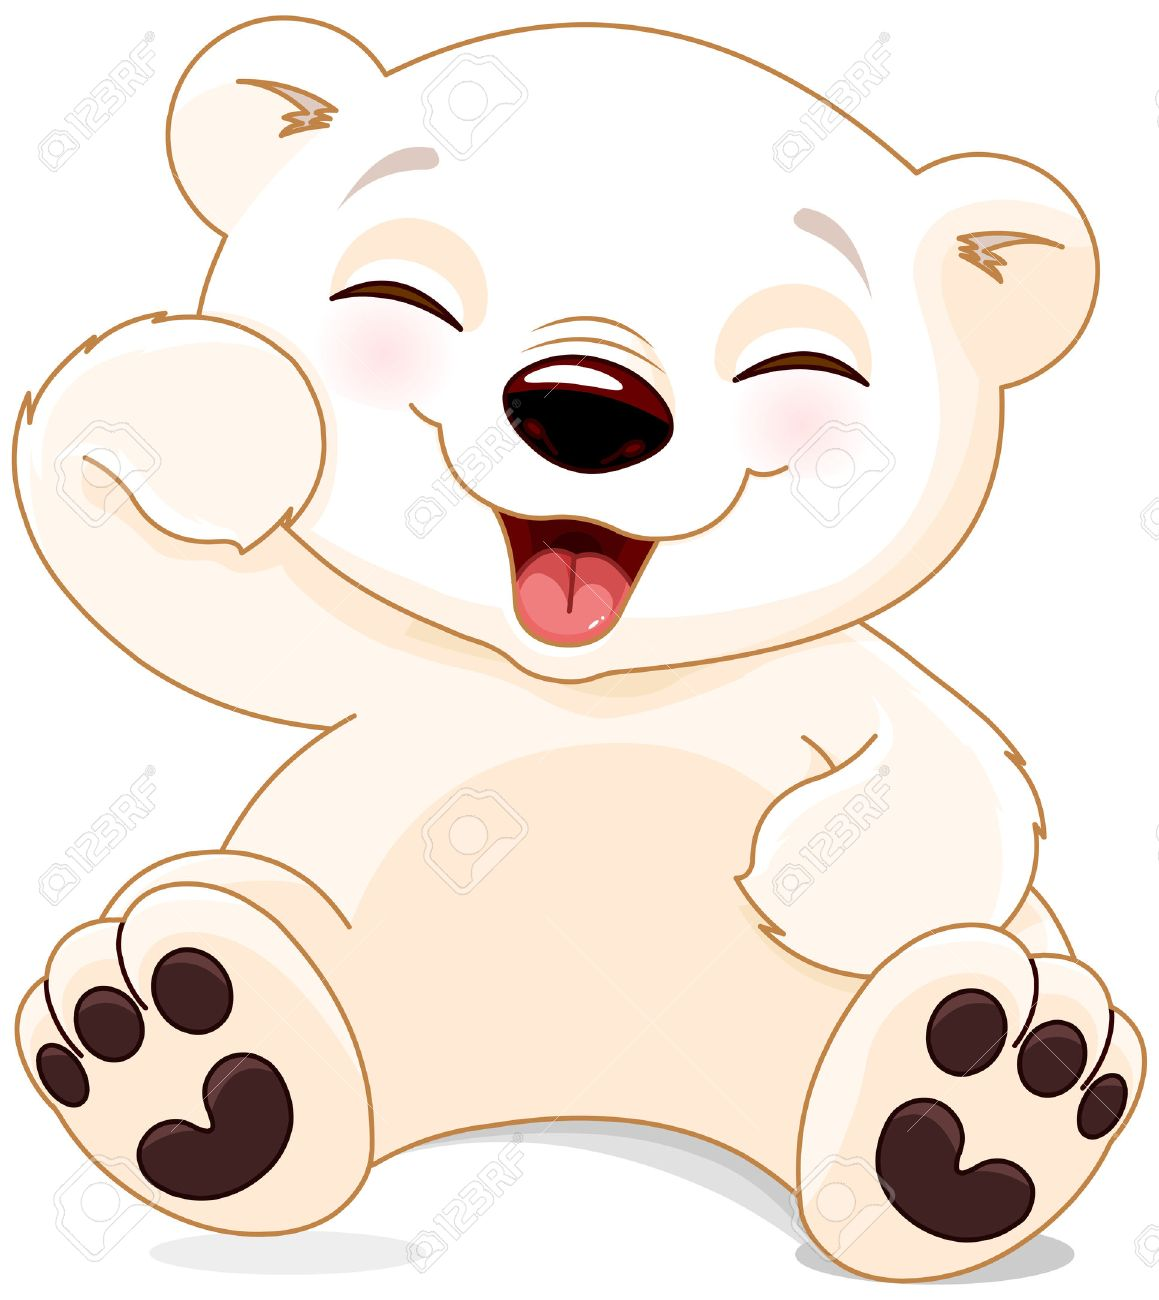 illustration of cute polar bear is laughing royalty free cliparts rh 123rf com cute baby bear clipart cute bear clip art free